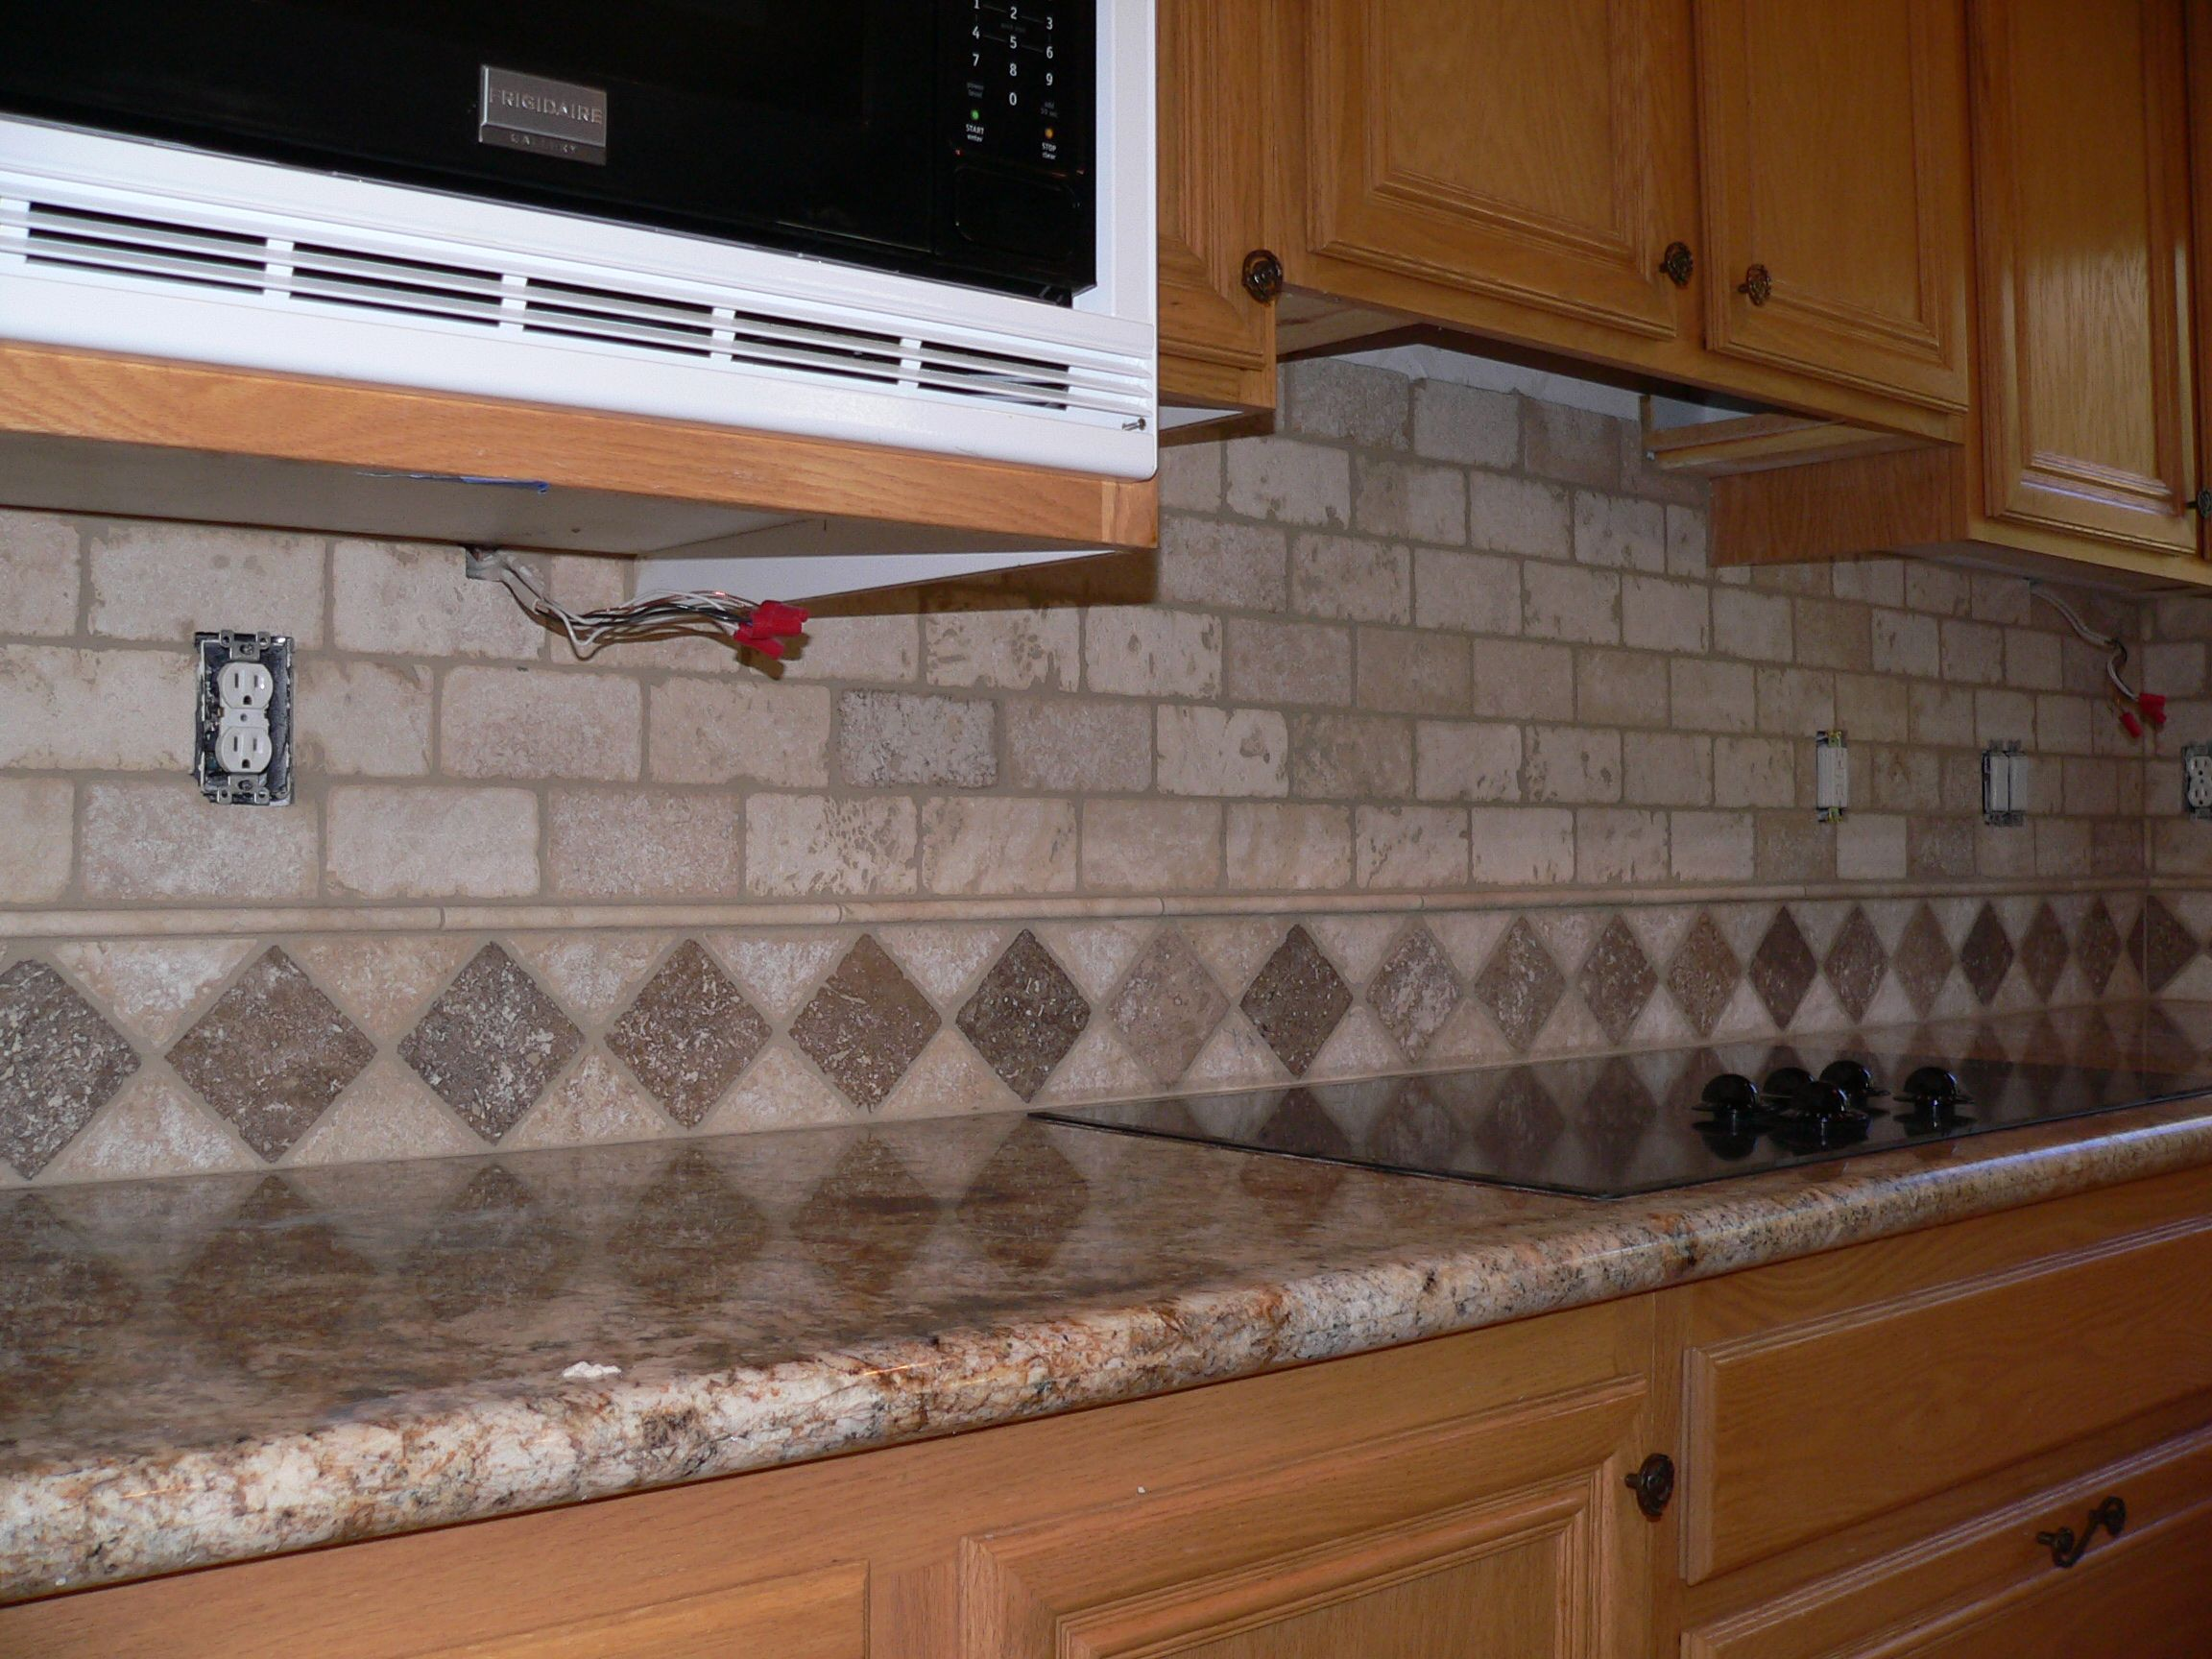 Good Tumbled Travertine Backsplash Ideas Part - 12: Travertine Tile Backsplash | Kitchen Backsplash Make-overu2026 | Everythingtile